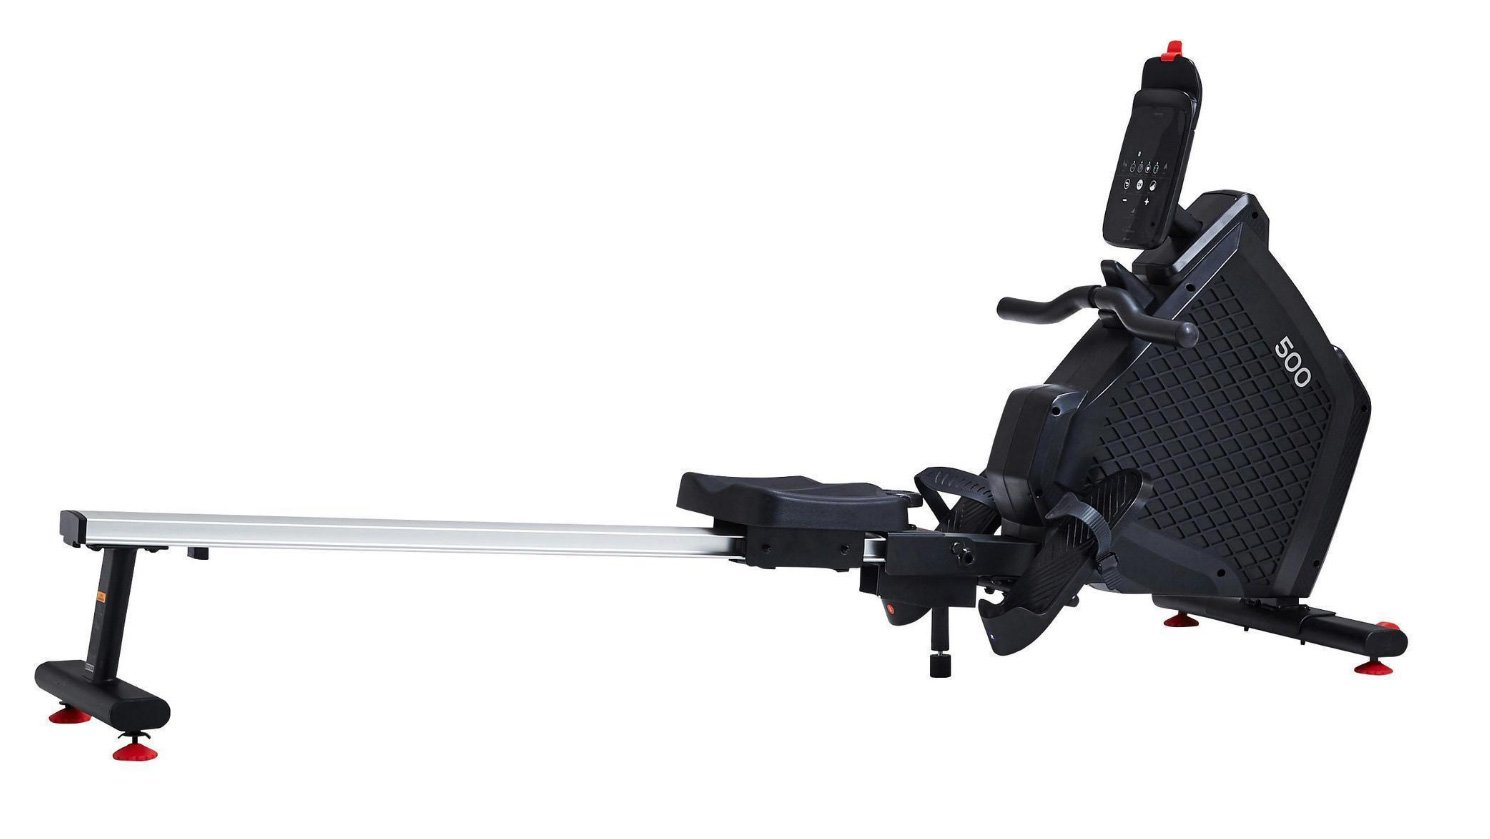 The Best Rowing Machine To Buy